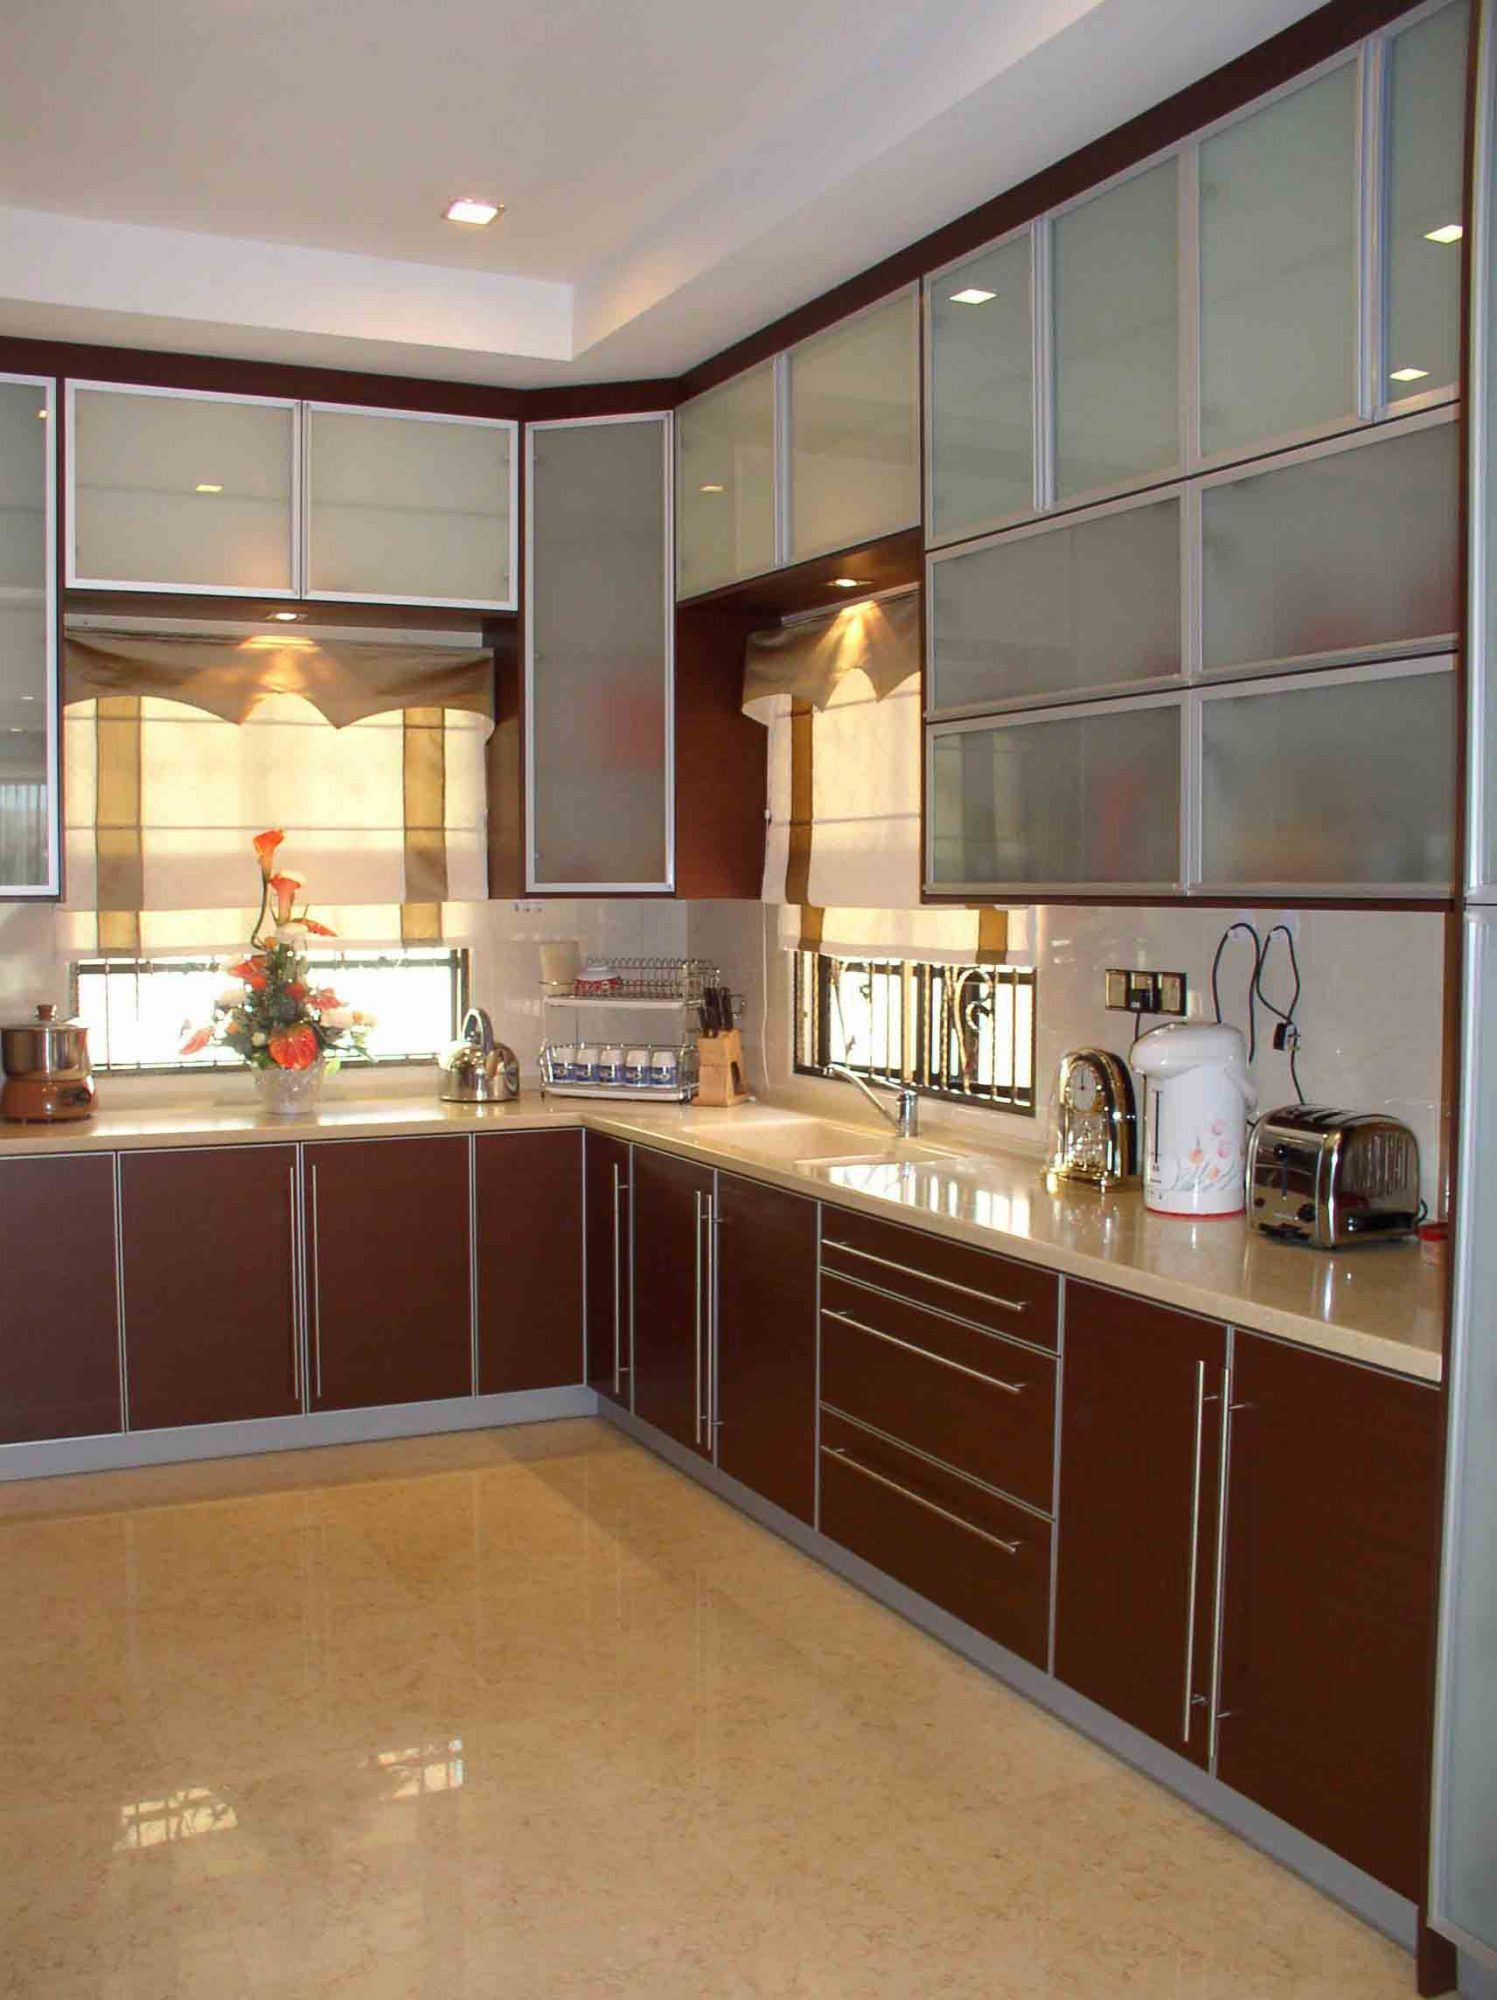 Your Pinspiration For Modular Kitchen Designs In India Study Every Of Our Ideas For Modular Kitc Kitchen Cabinet Design Kitchen Design Software Kitchen Design